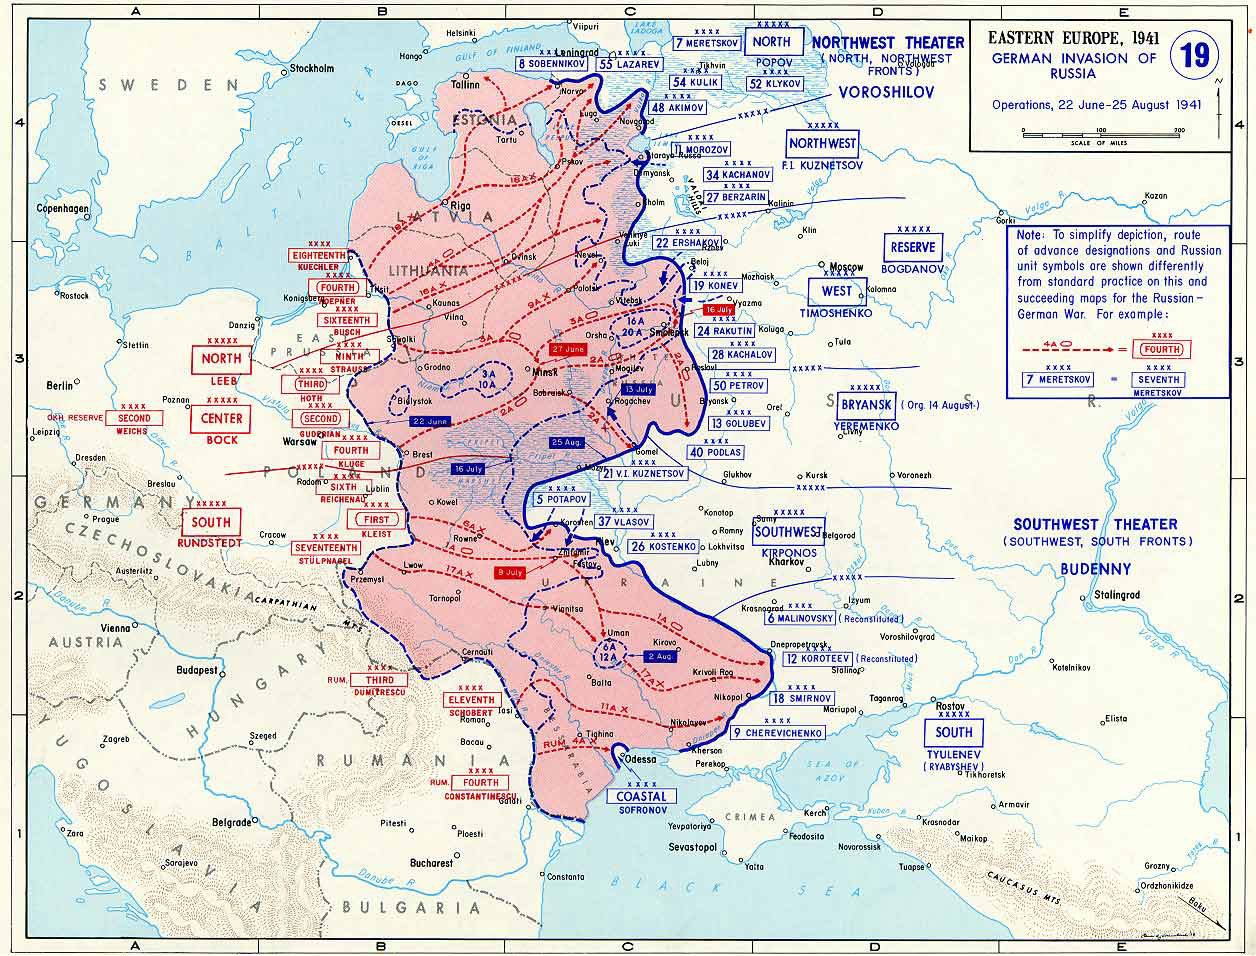 Map of Operation Barbarossa, the German invasion of the Soviet Union, 22 Jun-25 Aug 1941 (US Military Academy)